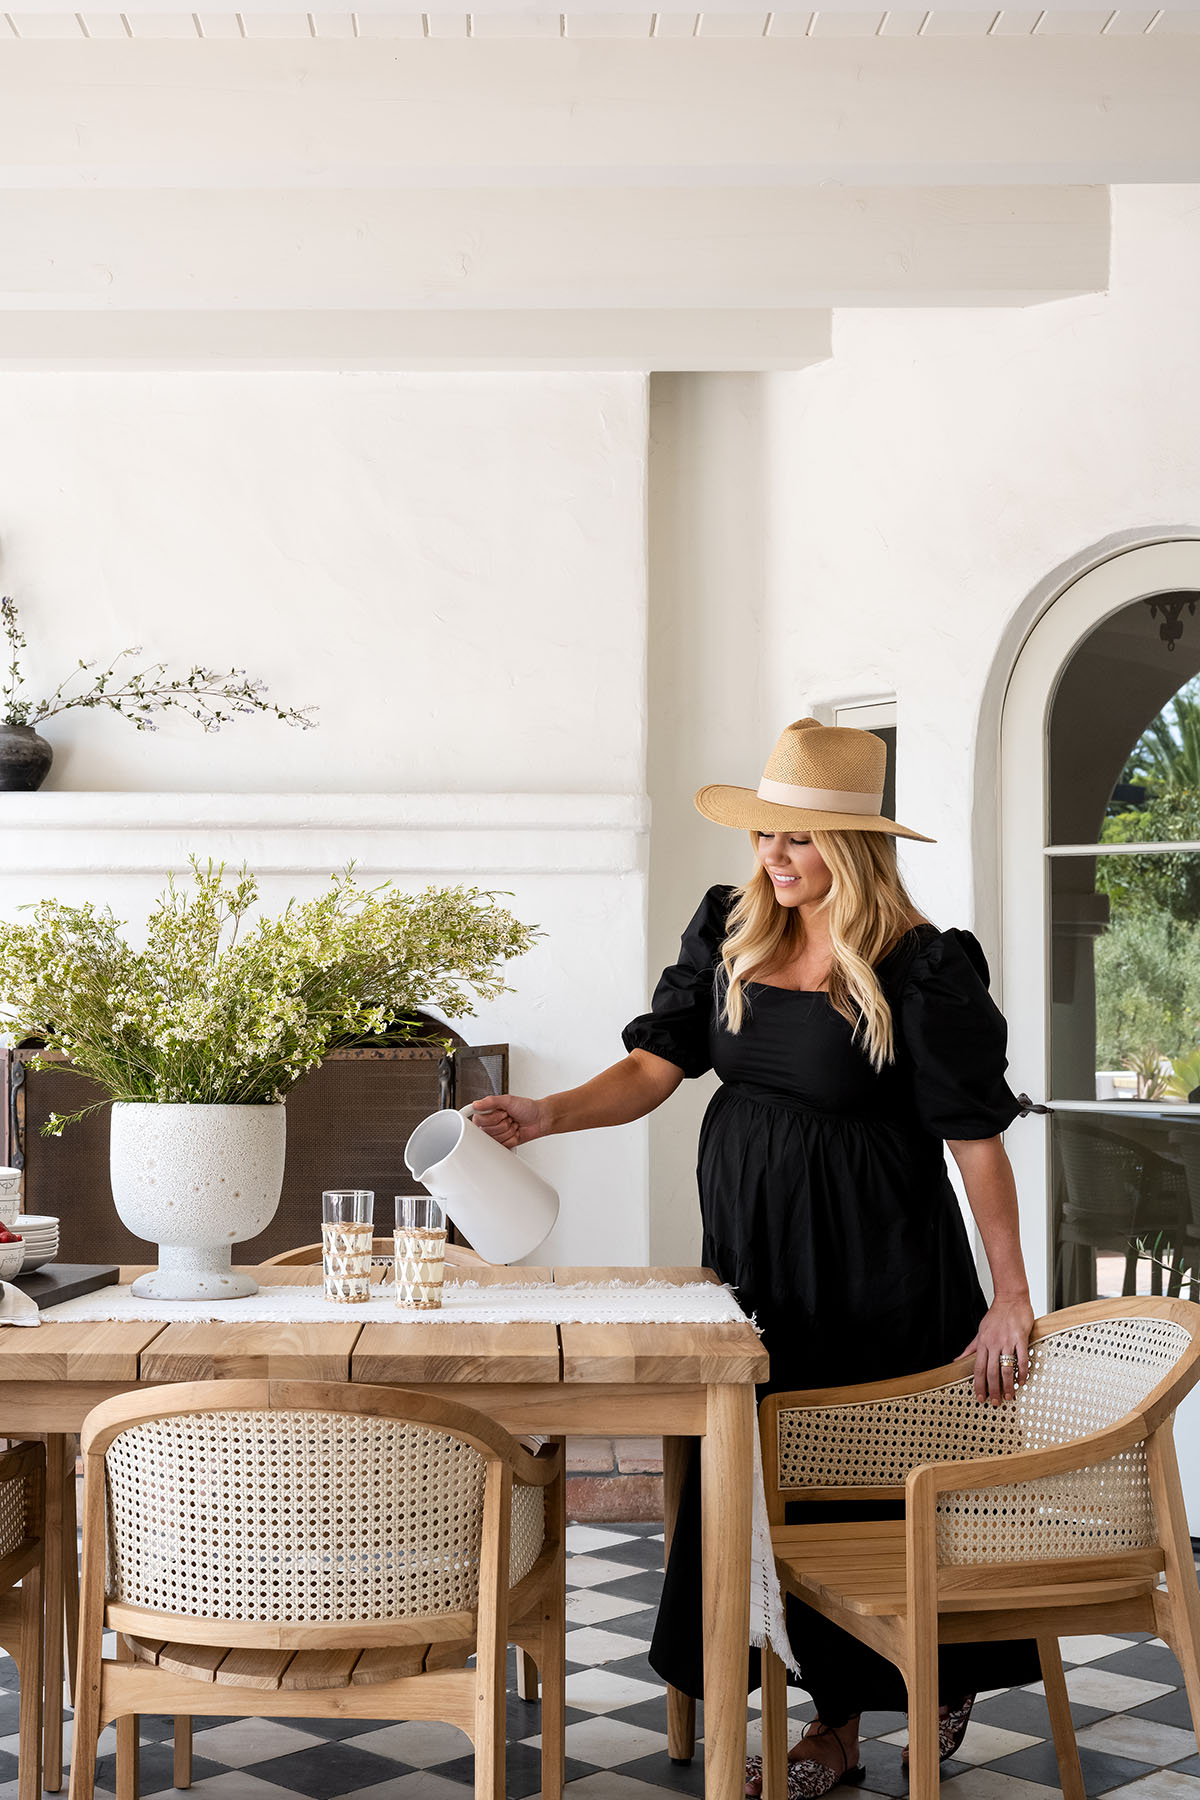 Our Guide to Dining Alfresco